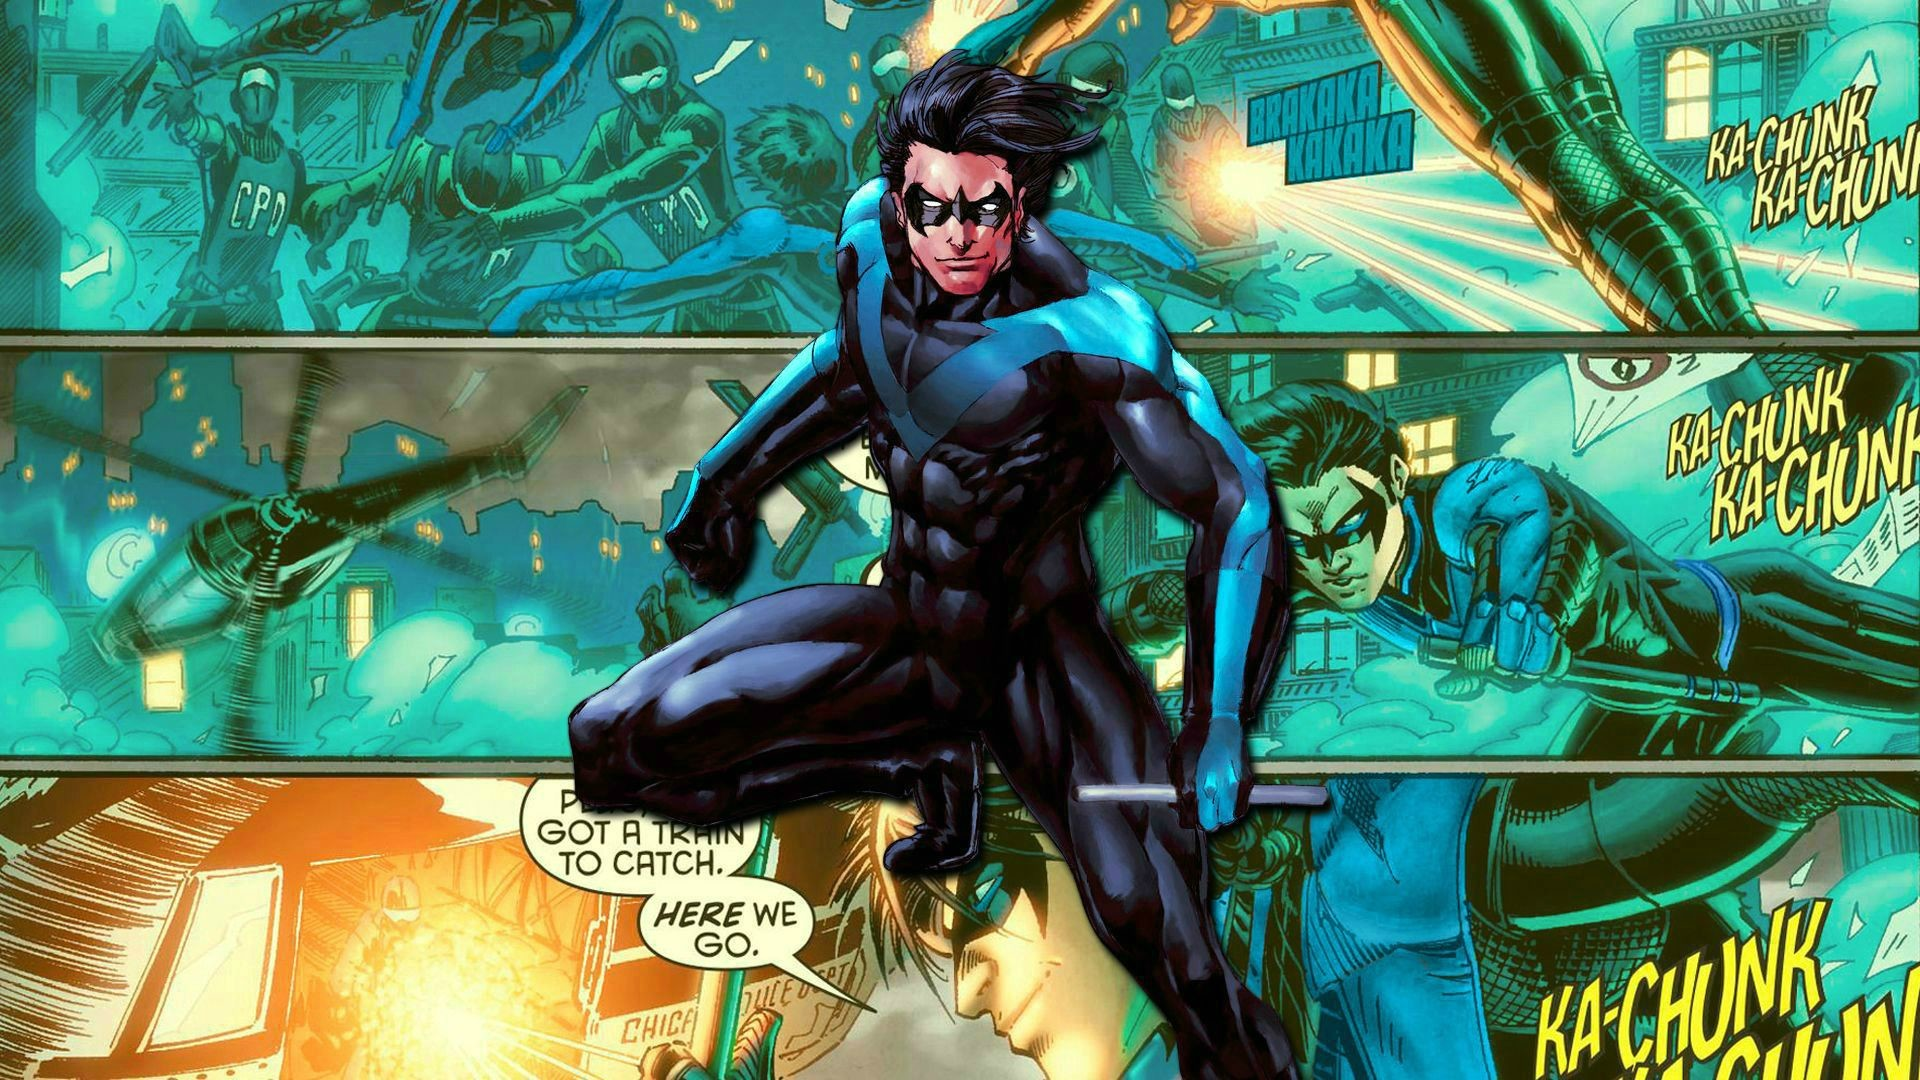 Nightwing HD Wallpapers Backgrounds Wallpaper Page | HD Wallpapers |  Pinterest | Nightwing, Hd wallpaper and Wallpaper